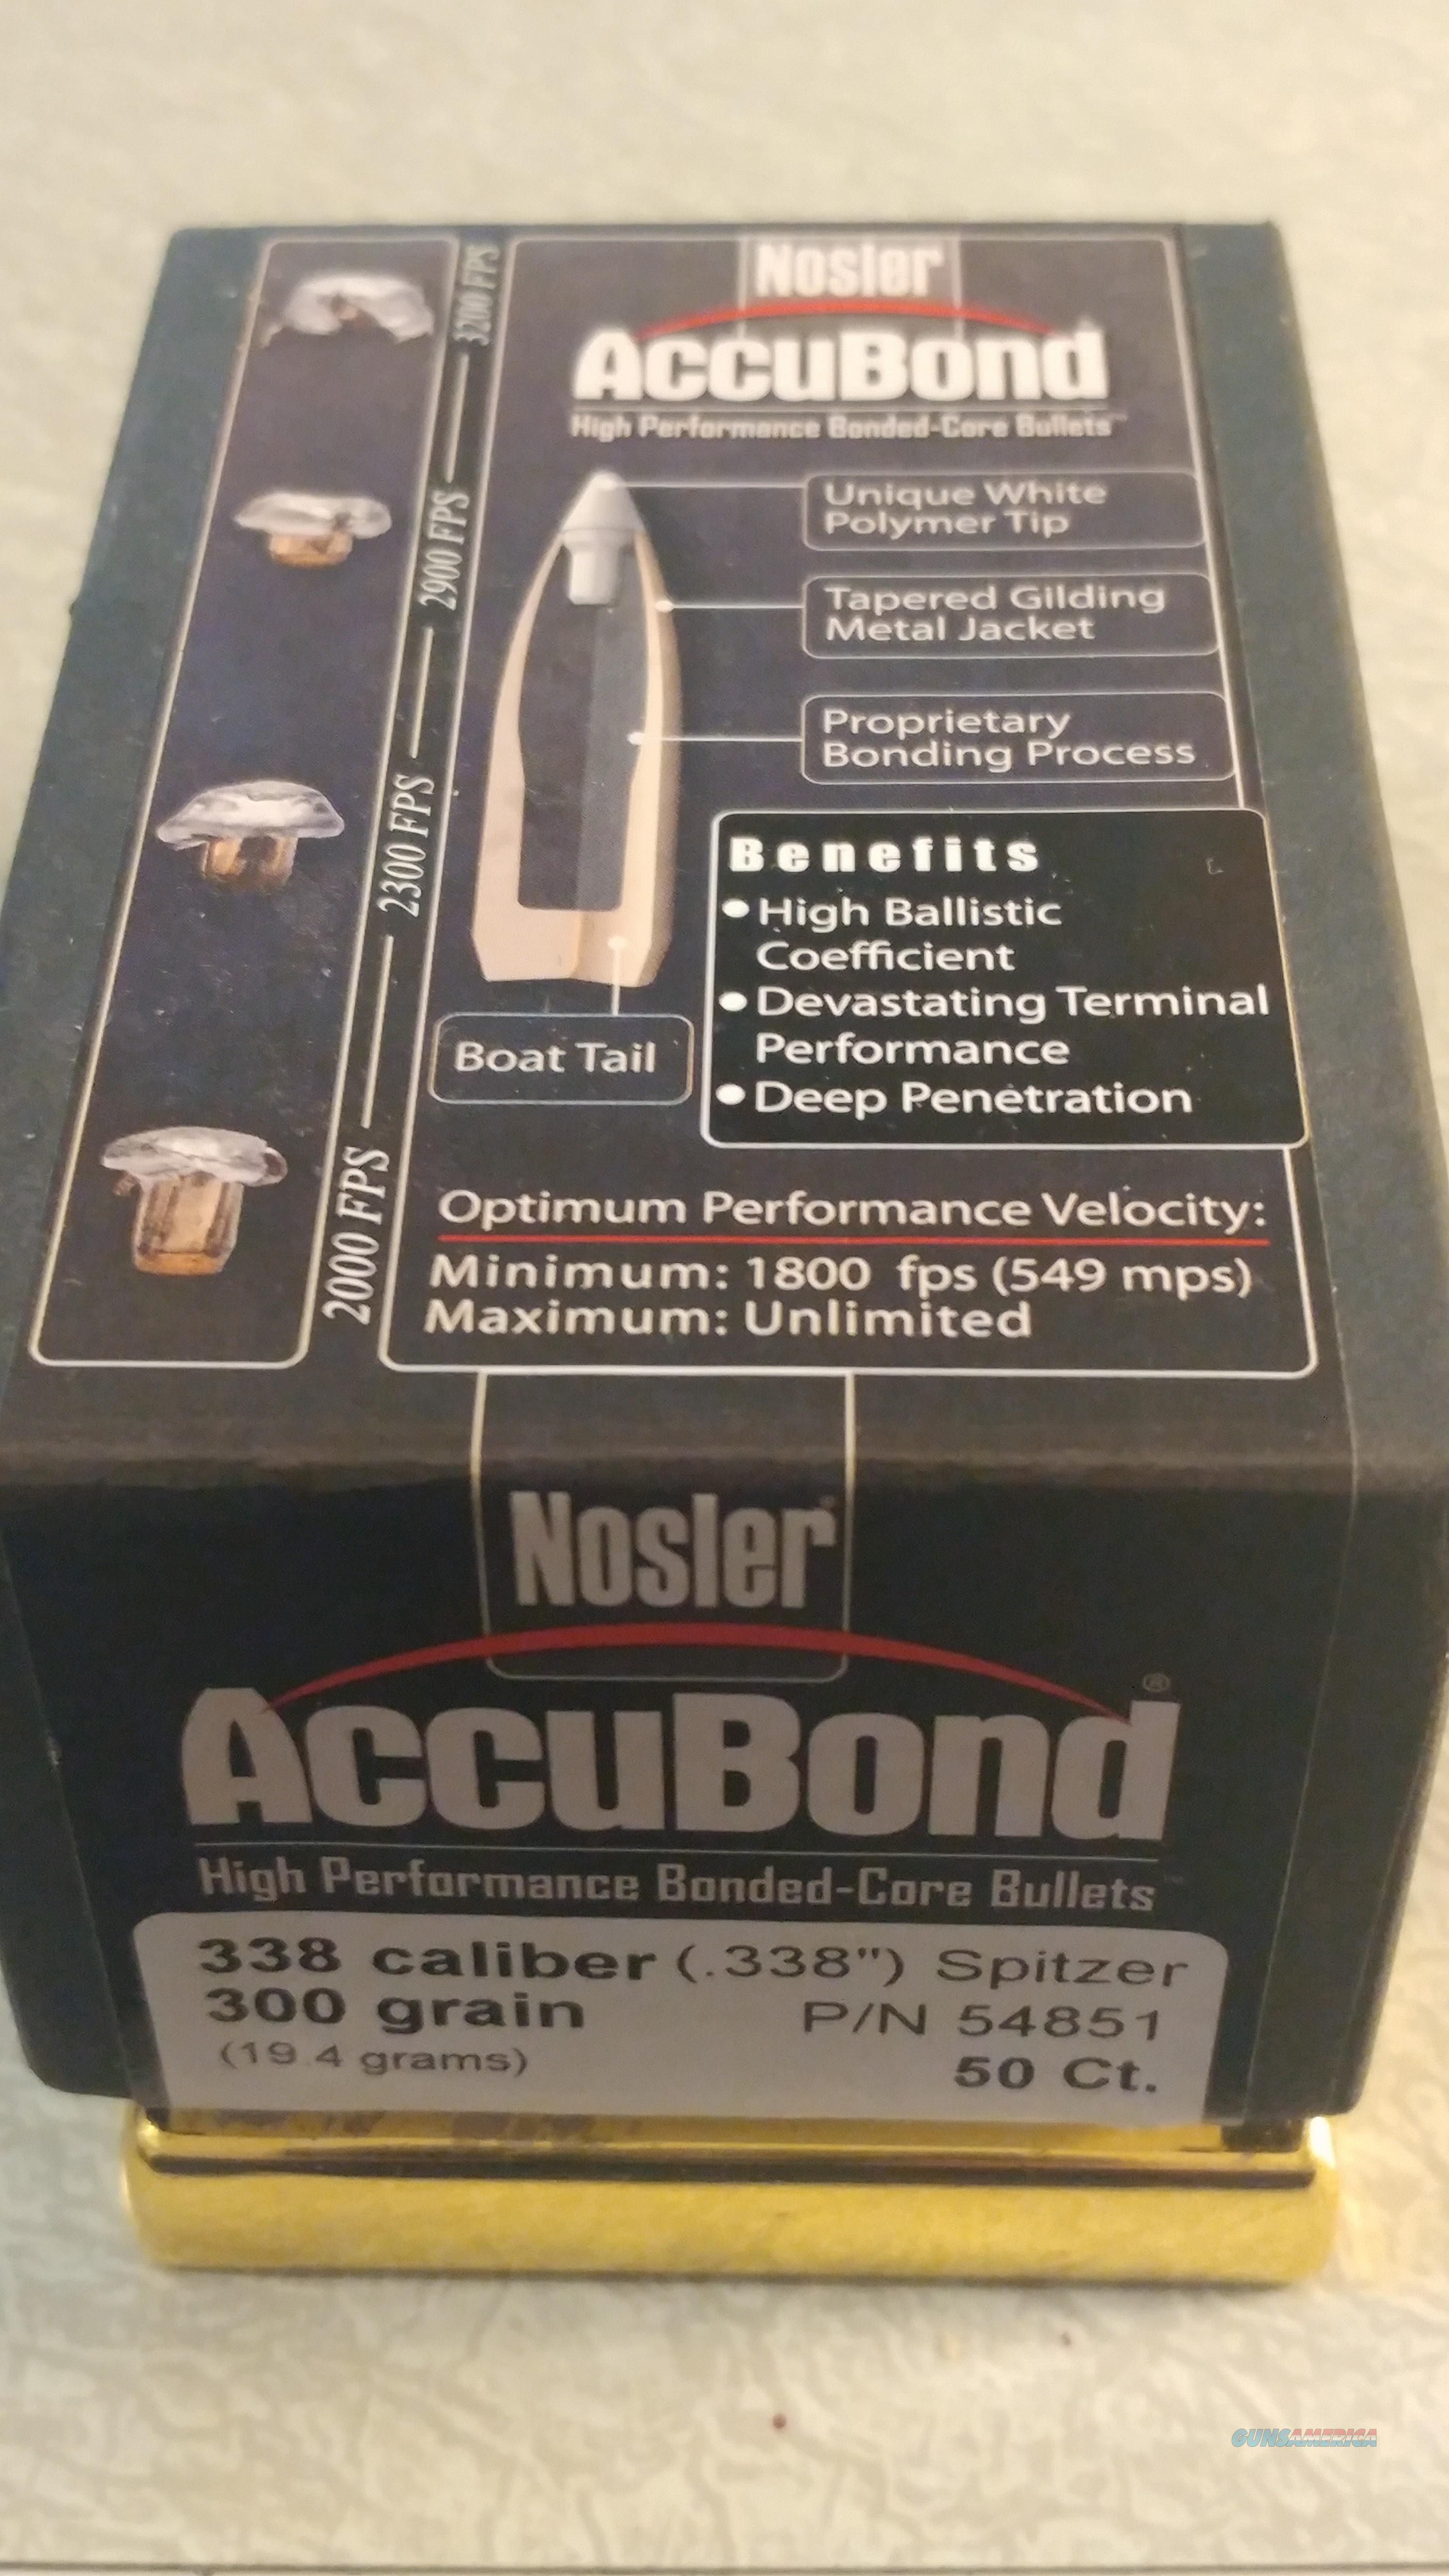 NOSLER ACCUBOND HIGH PERFORMANCE BONDED-CORE BULLETS 338 CALIBER 300 GRAIN  Non-Guns > Reloading > Components > Bullets